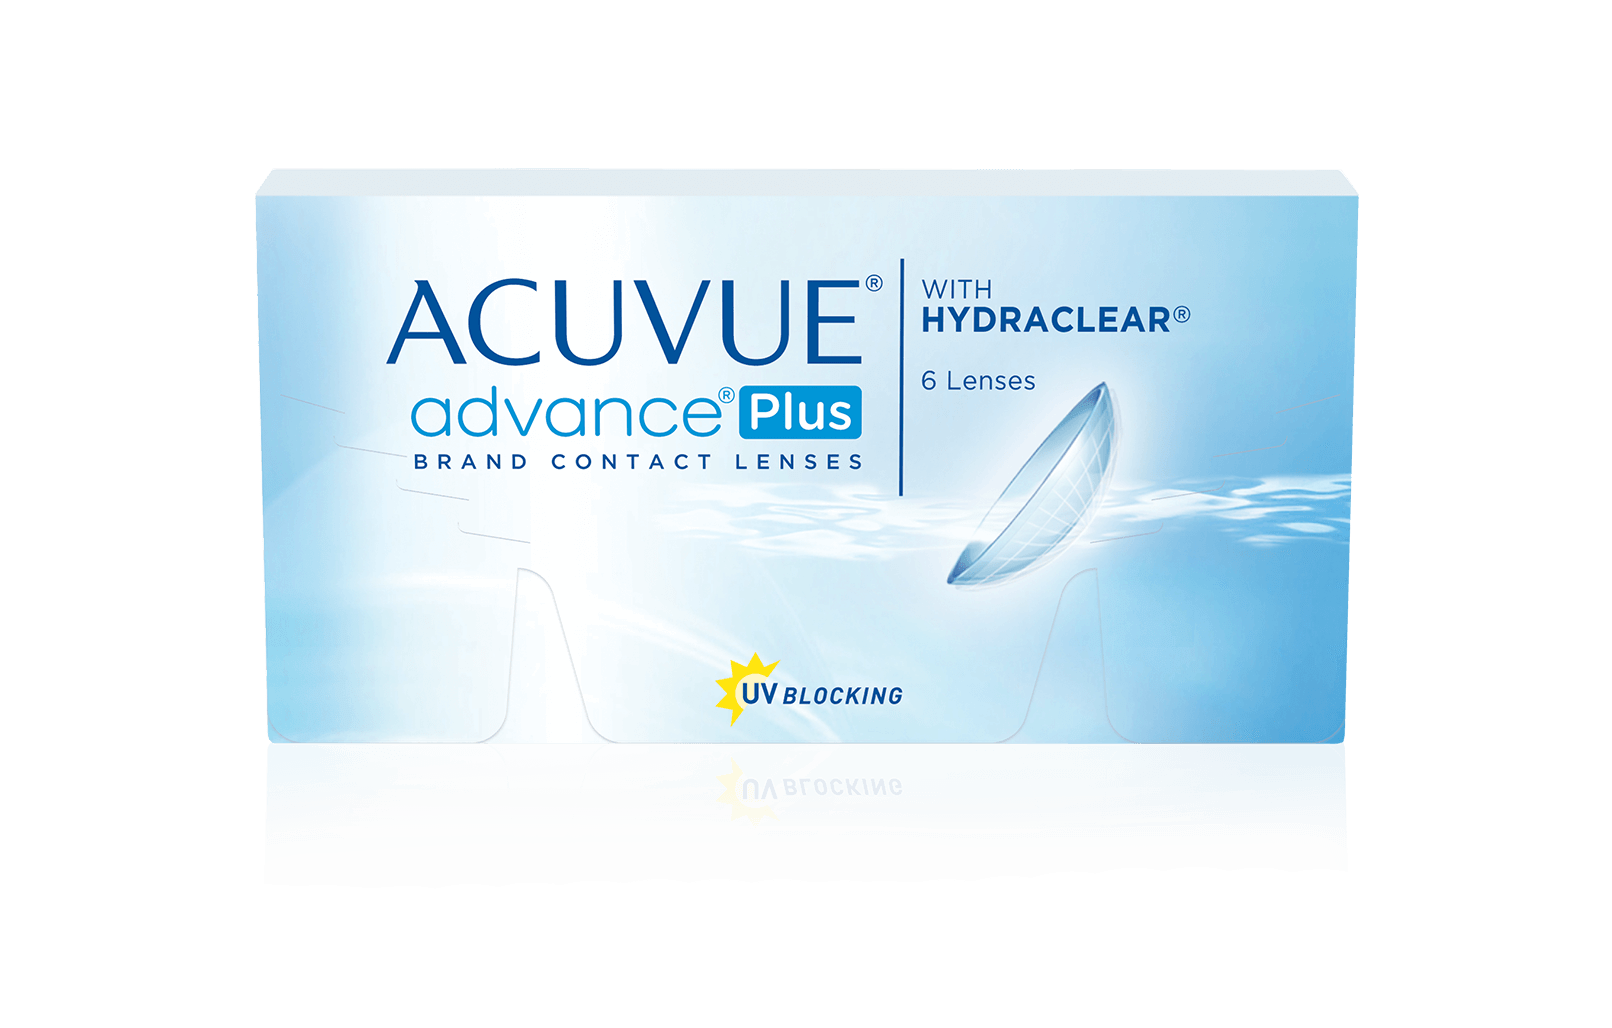 ACUVUE® ADVANCE Plus